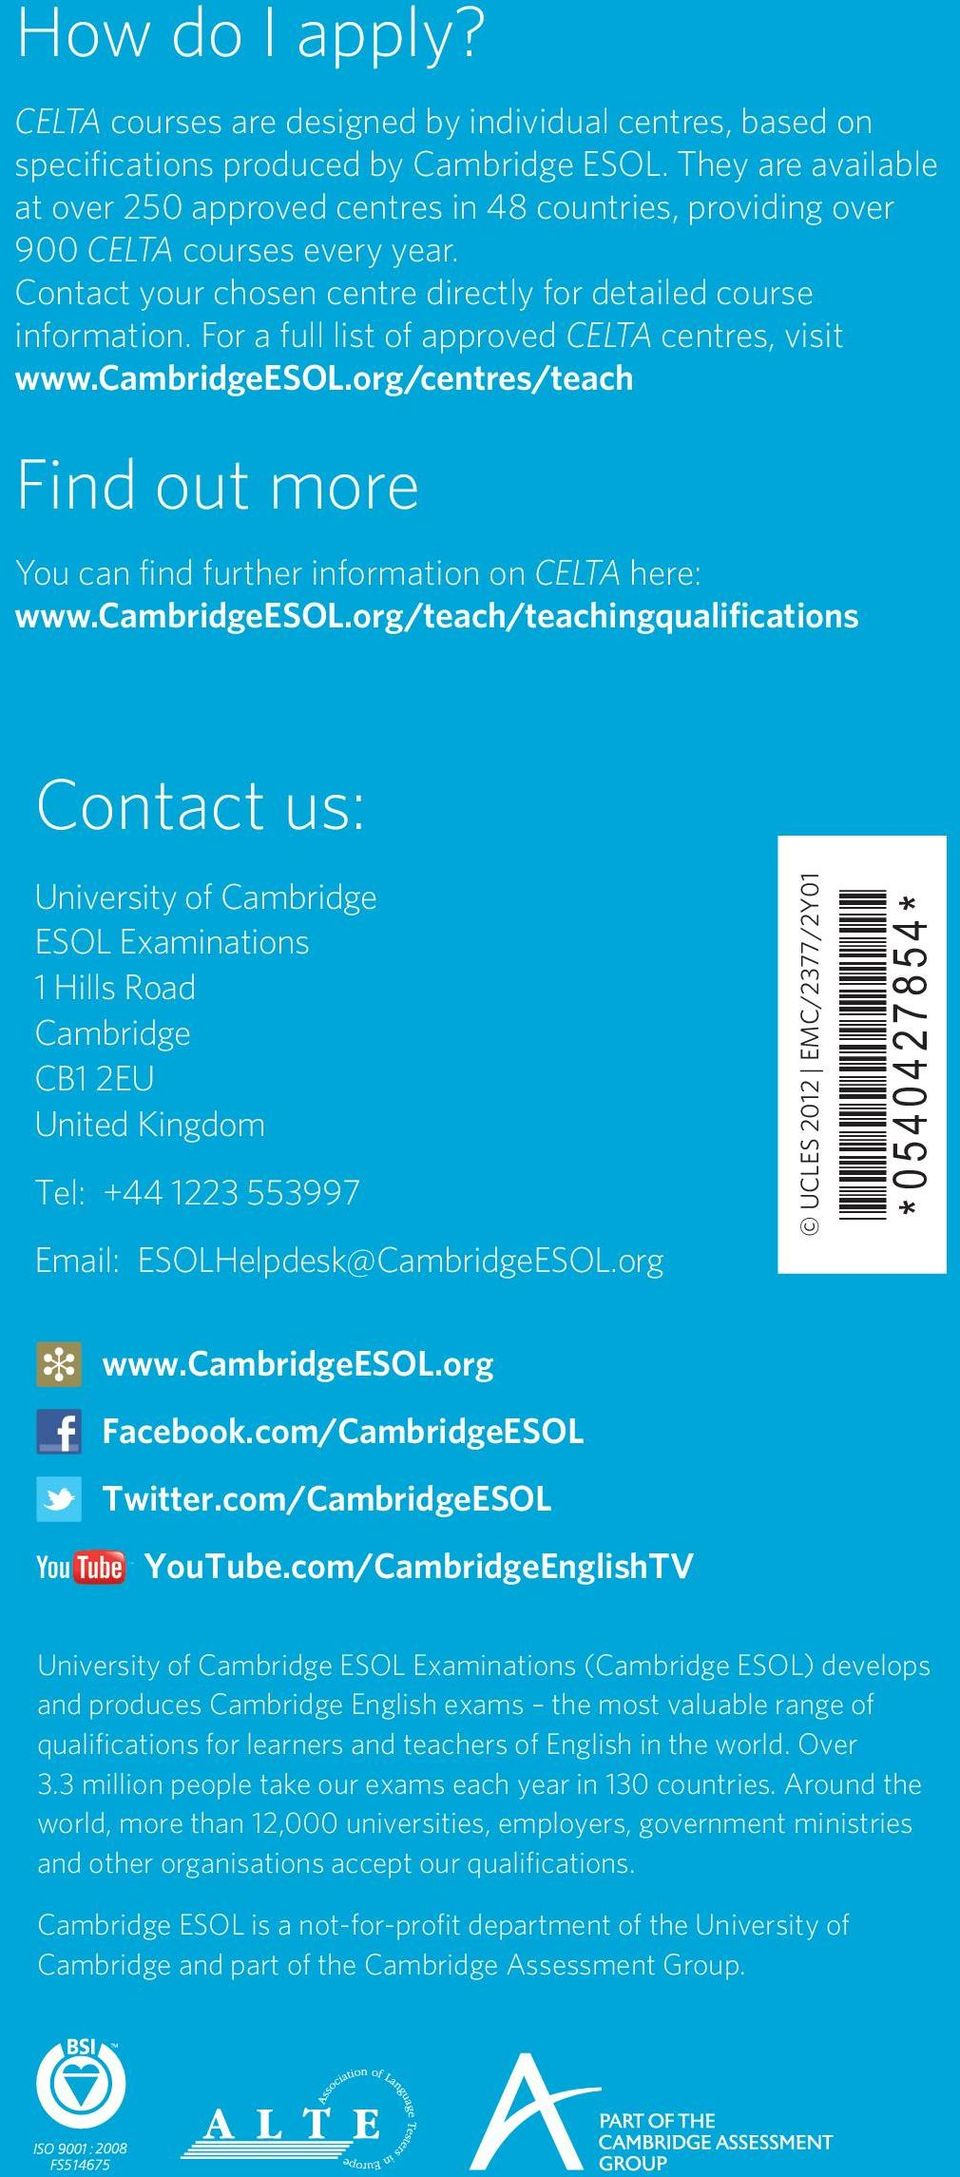 For a full list of approved CELTA centres, visit www.cambridgeesol.